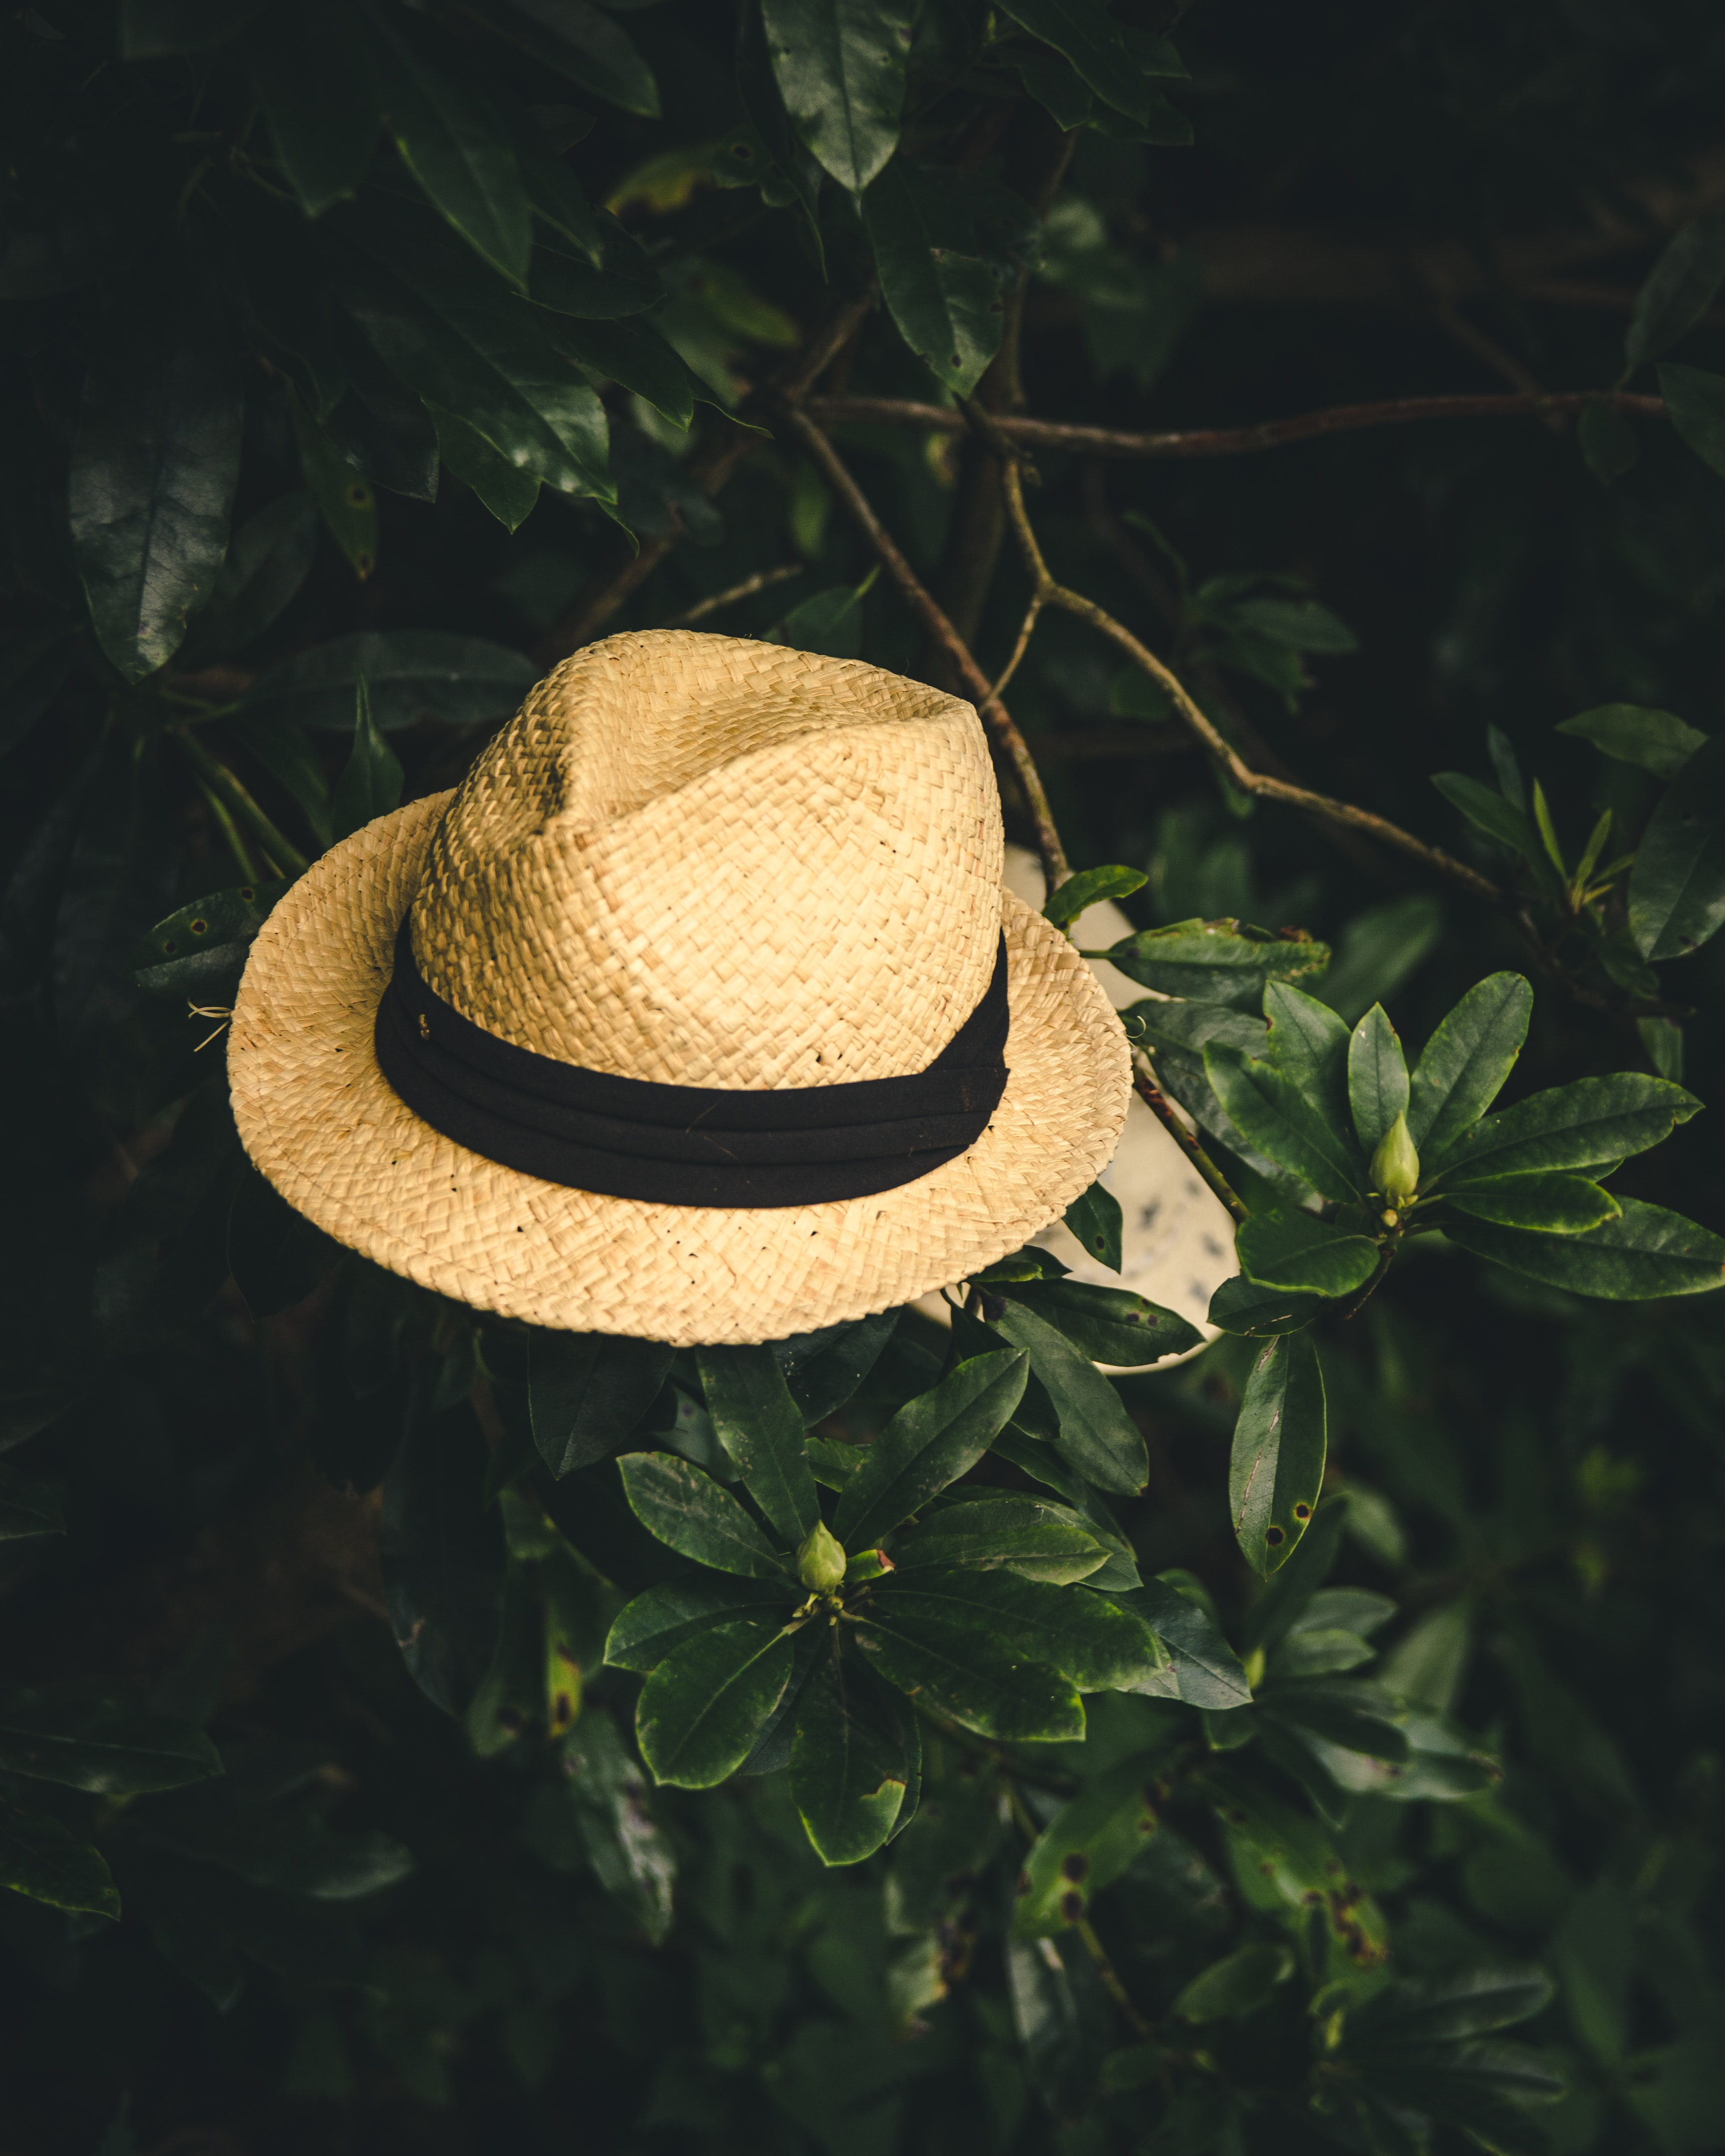 beige straw fedora hat on green leafed plant